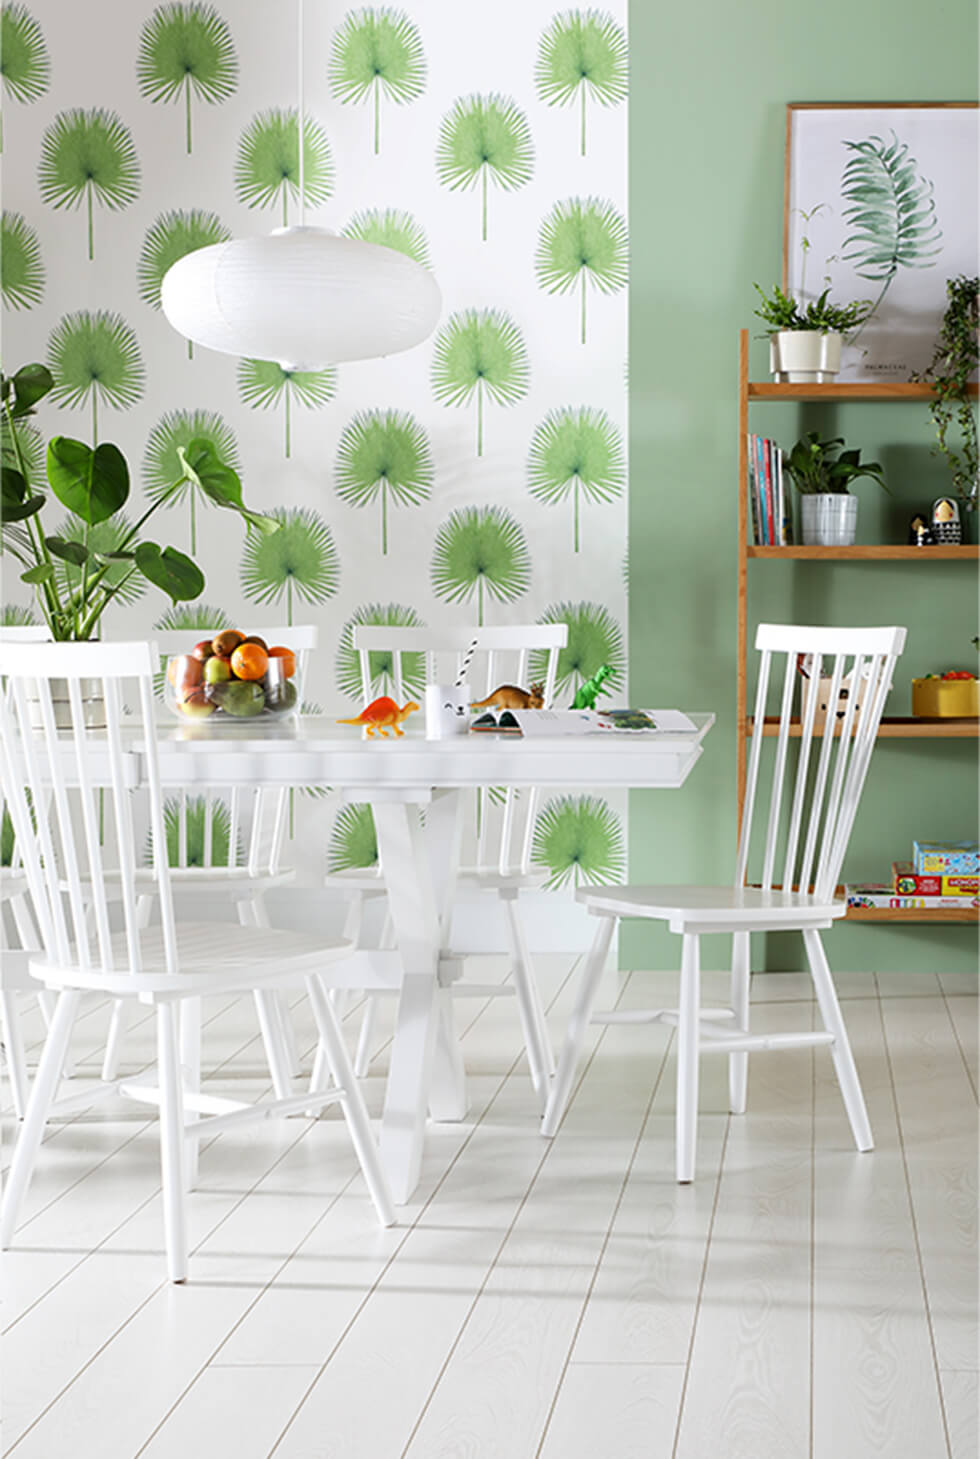 White wooden dining set in a calm green room